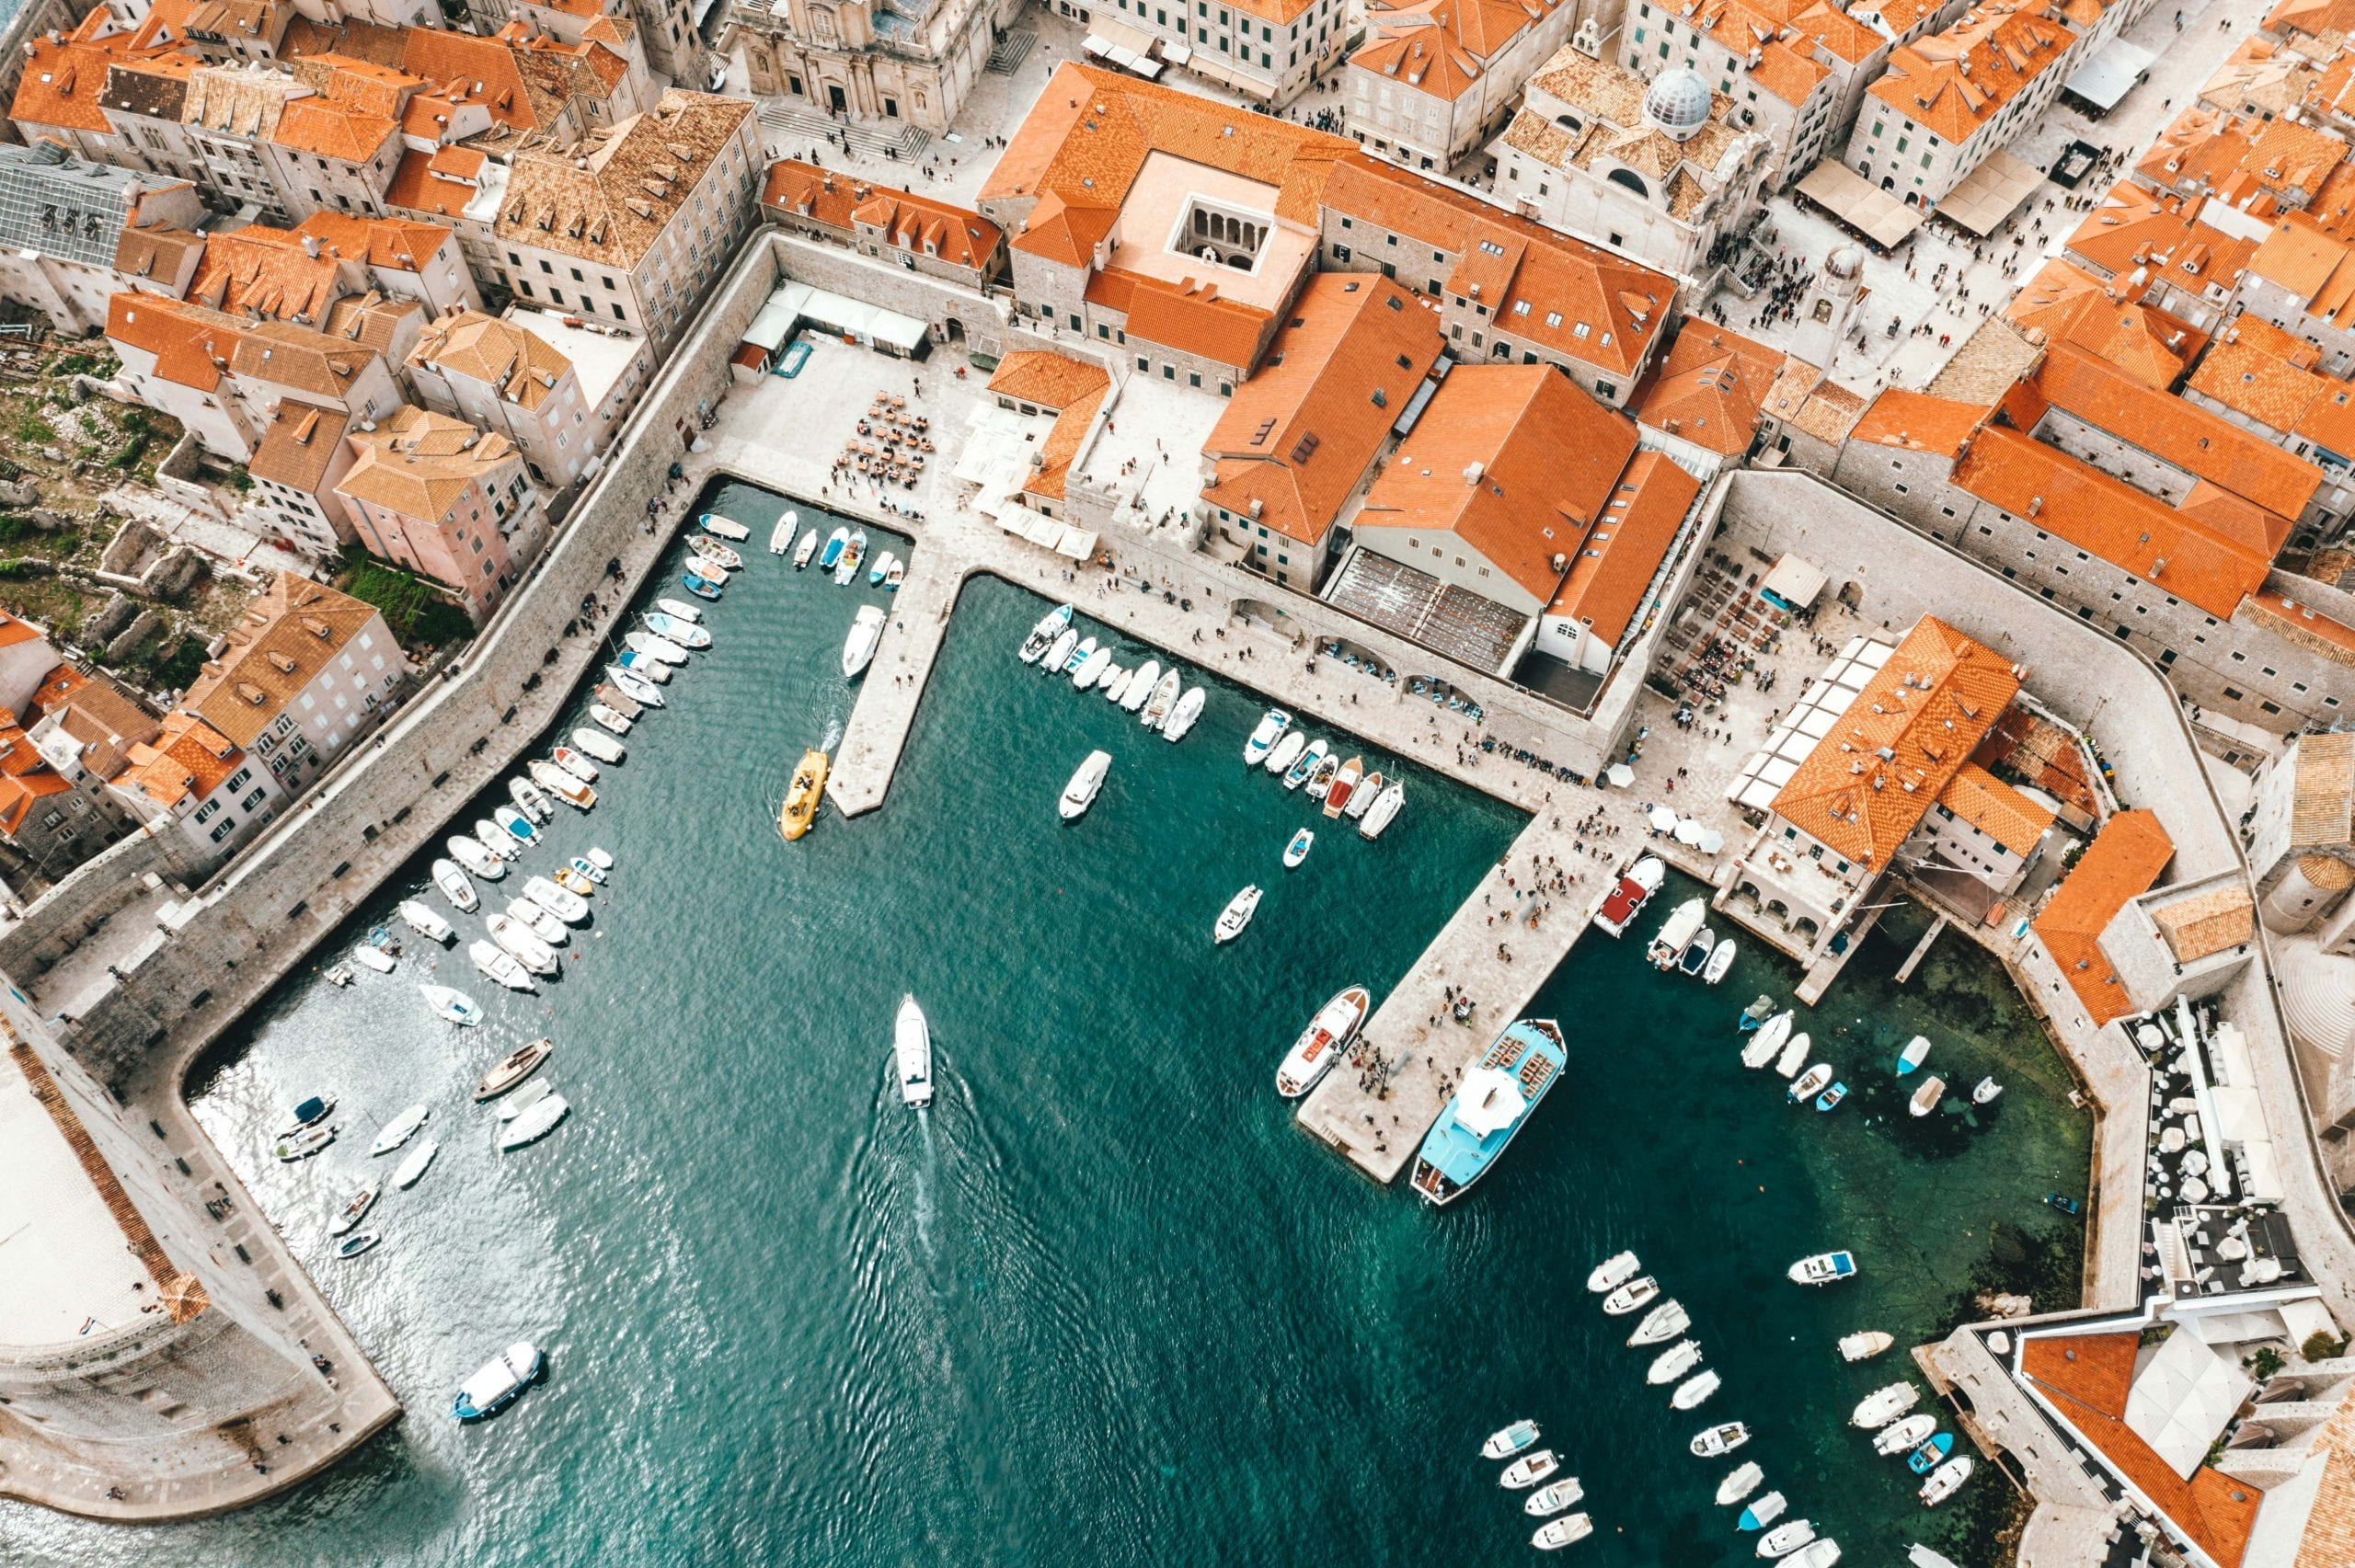 A Guide To The Game Of Thrones Locations In Dubrovnik